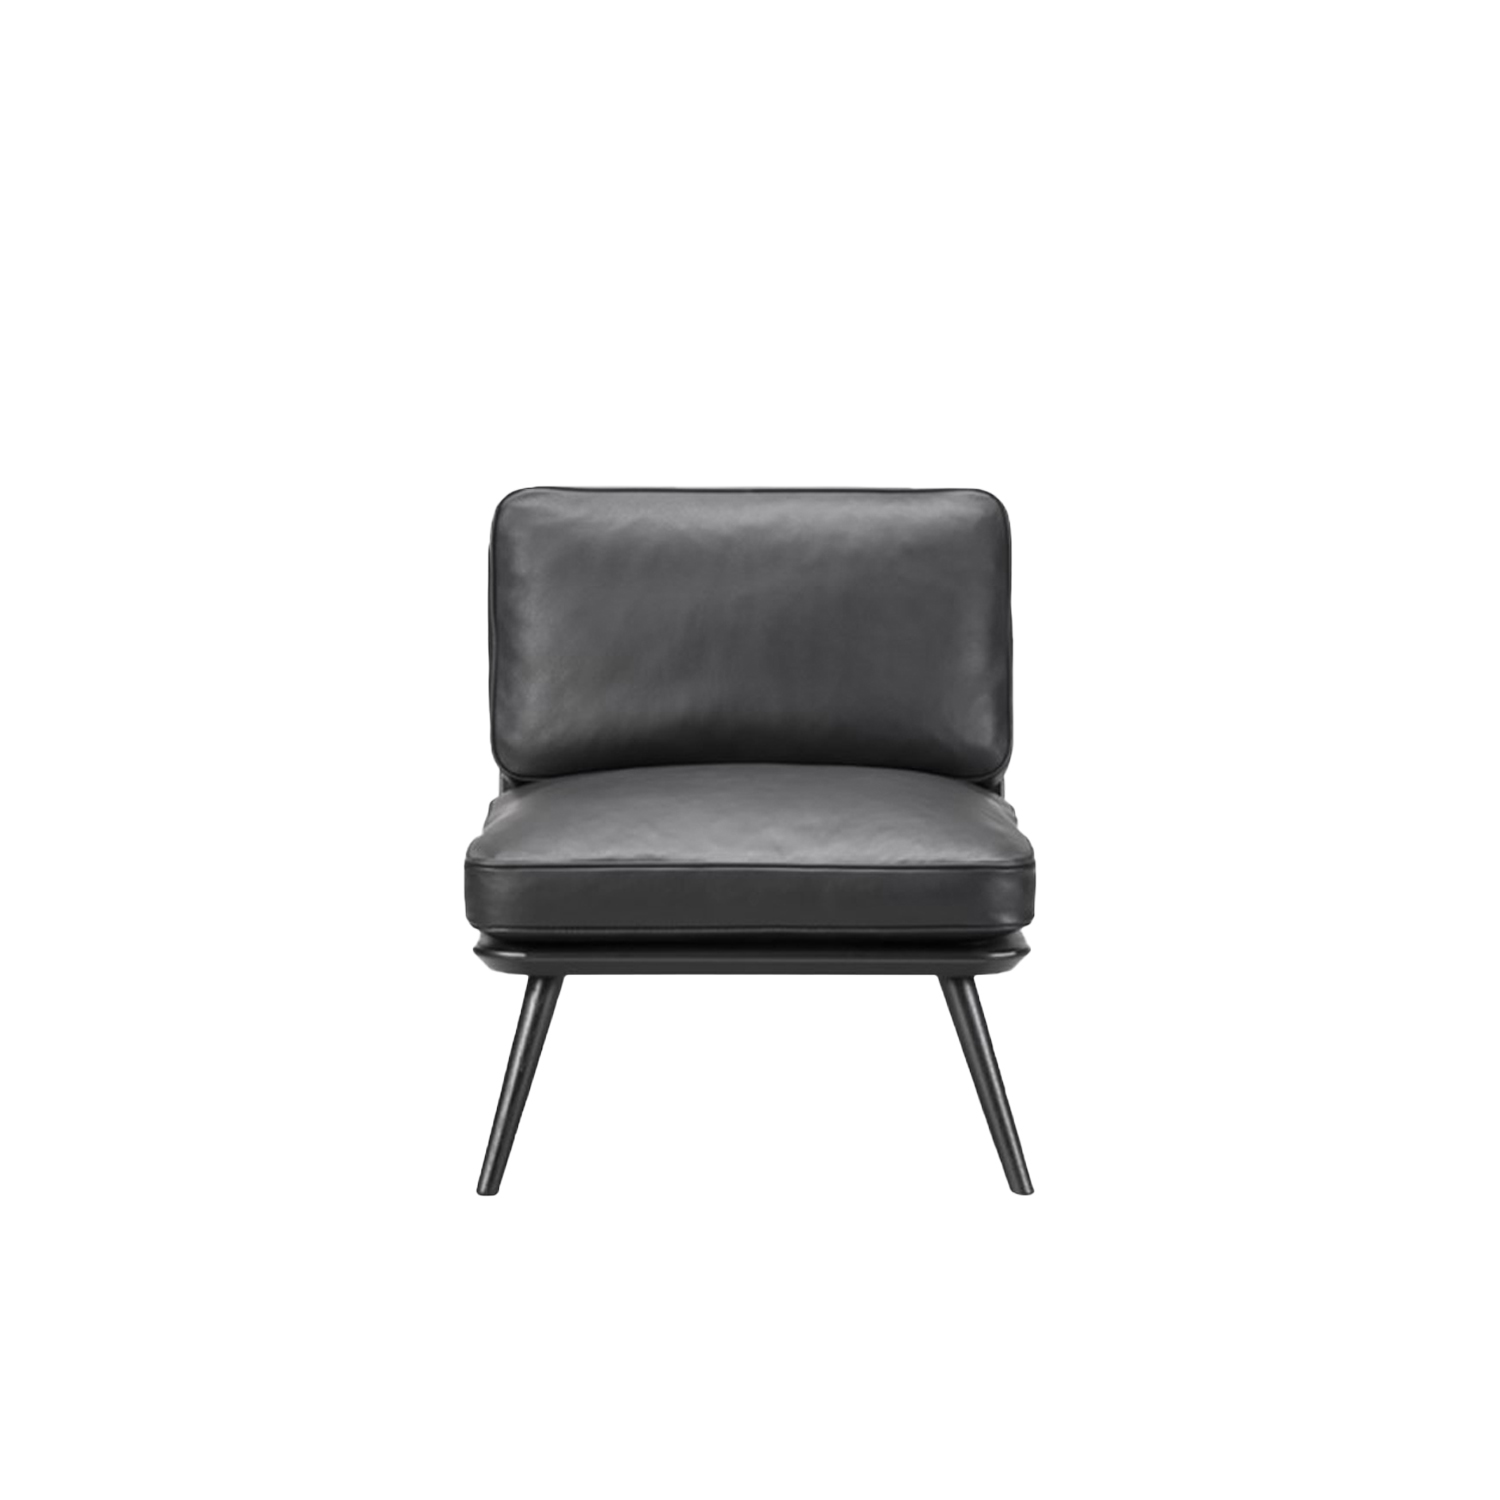 Spine Lounge Suite Chair Petite - Spine Lounge Suite Petit is a light lounge chair for private homes or open lounge areas. The generous use of materials is balanced by its discreet design. The accented detailing on the wooden back makes the chair as beautiful standing mid-room as it is against a wall.  Curved corners, ample cushions and somewhat low to the ground, Spine Lounge is a testament to simplicity as the ultimate form of exclusivity. What began as a Spine Lounge Chair for a Michelin-star restaurant has expanded into an entire series with the same signature approach, encompassing the Spine Lounge Suite, Spine Petit, Spine Daybed, Spine Sofa and Spine Bench. An array of variants that easily lend themselves to all kinds of scenarios in the high-end hospitality and retail sector, as well as private residences.   What they all share is a soft, plush cushioned side for comfort supported by a singular structure in solid wood. Incorporated into the structure are slightly splayed legs at either end, which signal a sense of relaxed informality.   The upholstery draws on Fredericia's signature techniques, with a modern spin. Discrete details on various versions, such as the leather piping around the sides, add to the series' subtle sophistication.   The result is a succinct design that's soft yet solid. Fluid yet structured. Poetic yet purposeful. Able to exude, at a glance, an ambience of elegance.   | Matter of Stuff